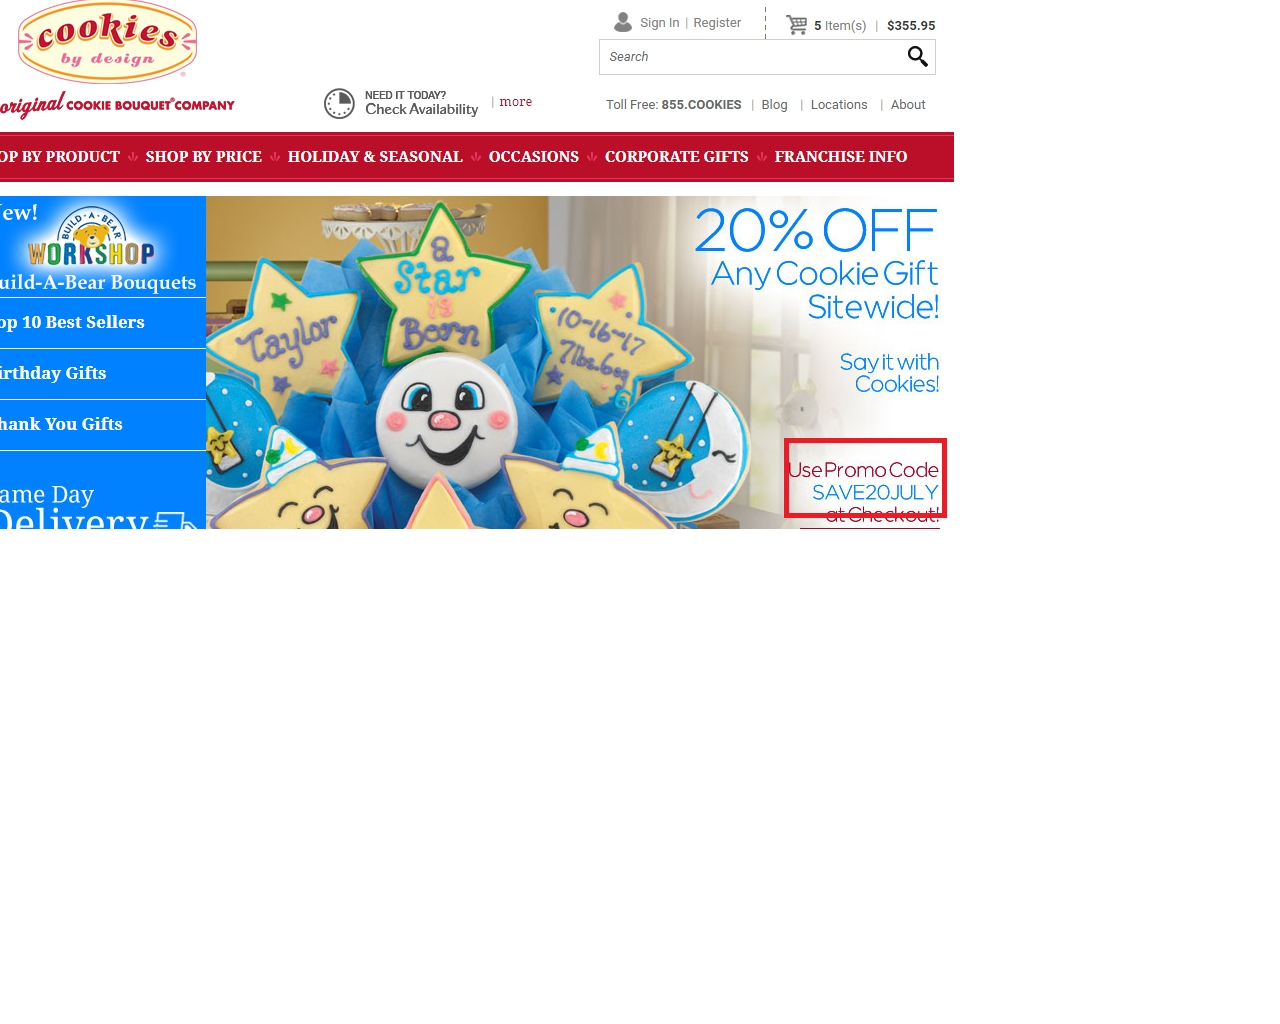 Cookies by design coupon code